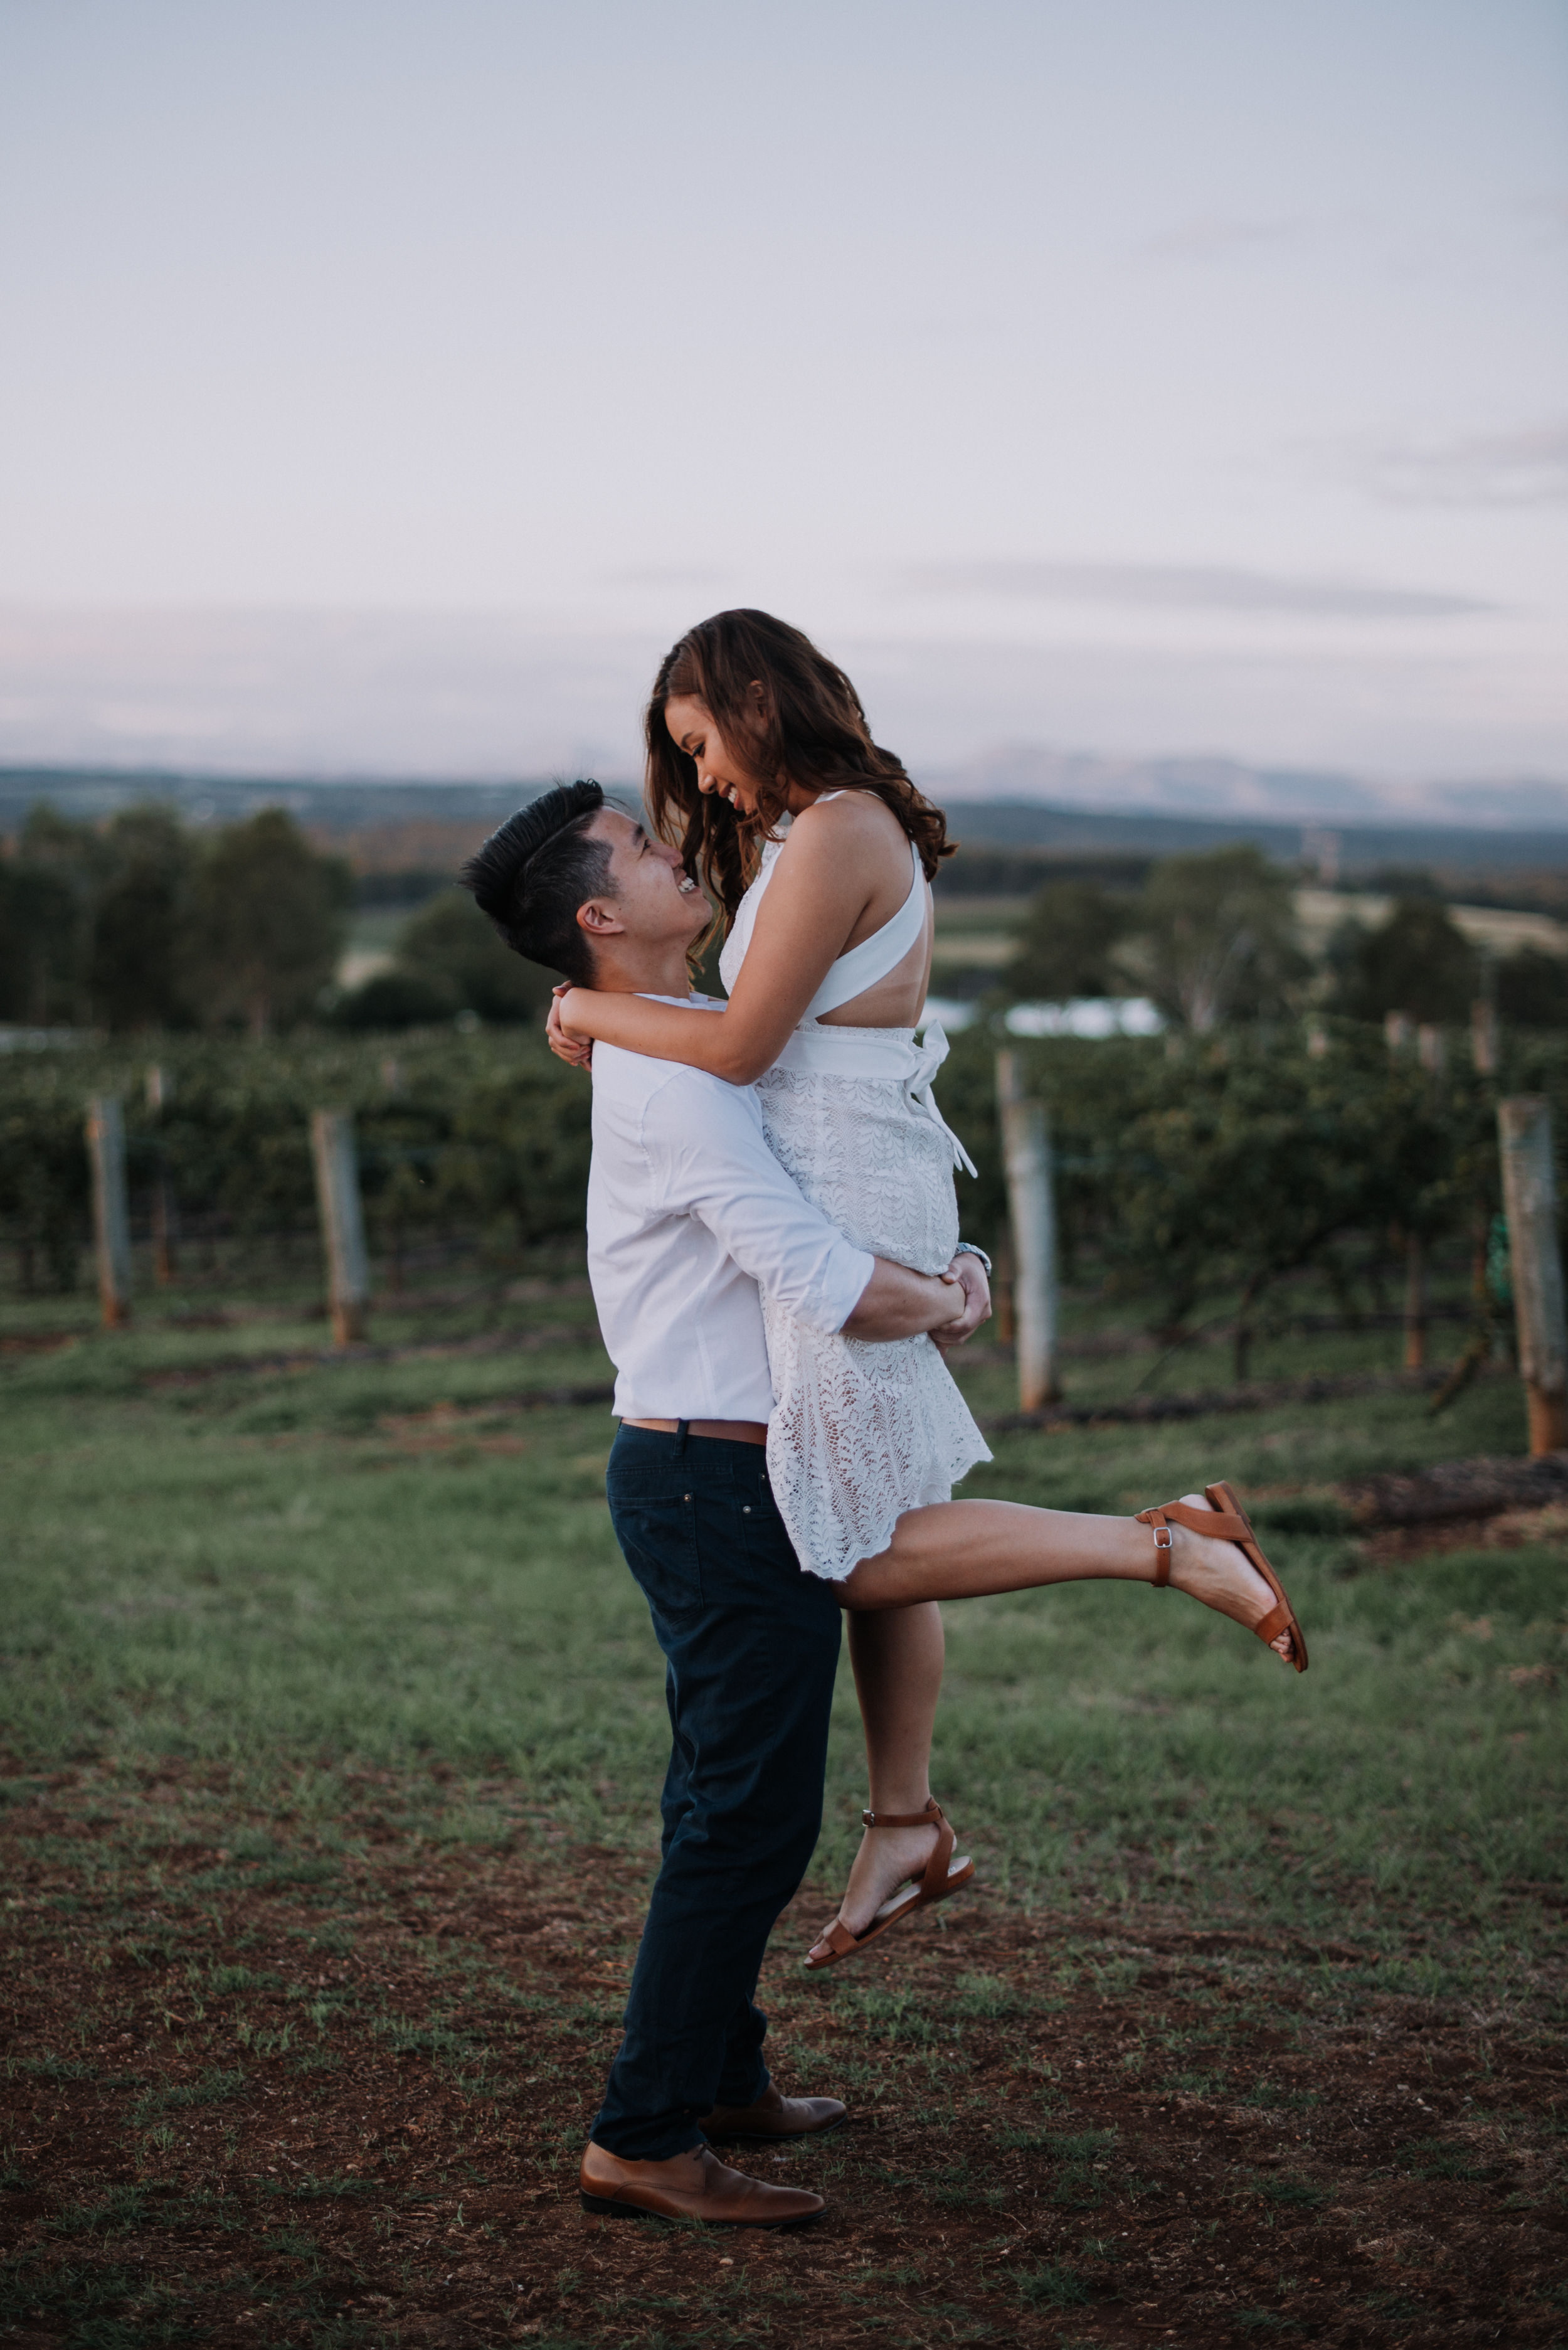 20180310 LOVELENSCAPES PHOTOGRAPHY X THI & ANTHONY • HUNTER VALLEY WINERY ENGAGEMENT PHOTOS • MOBILE SIZE • 17.jpg